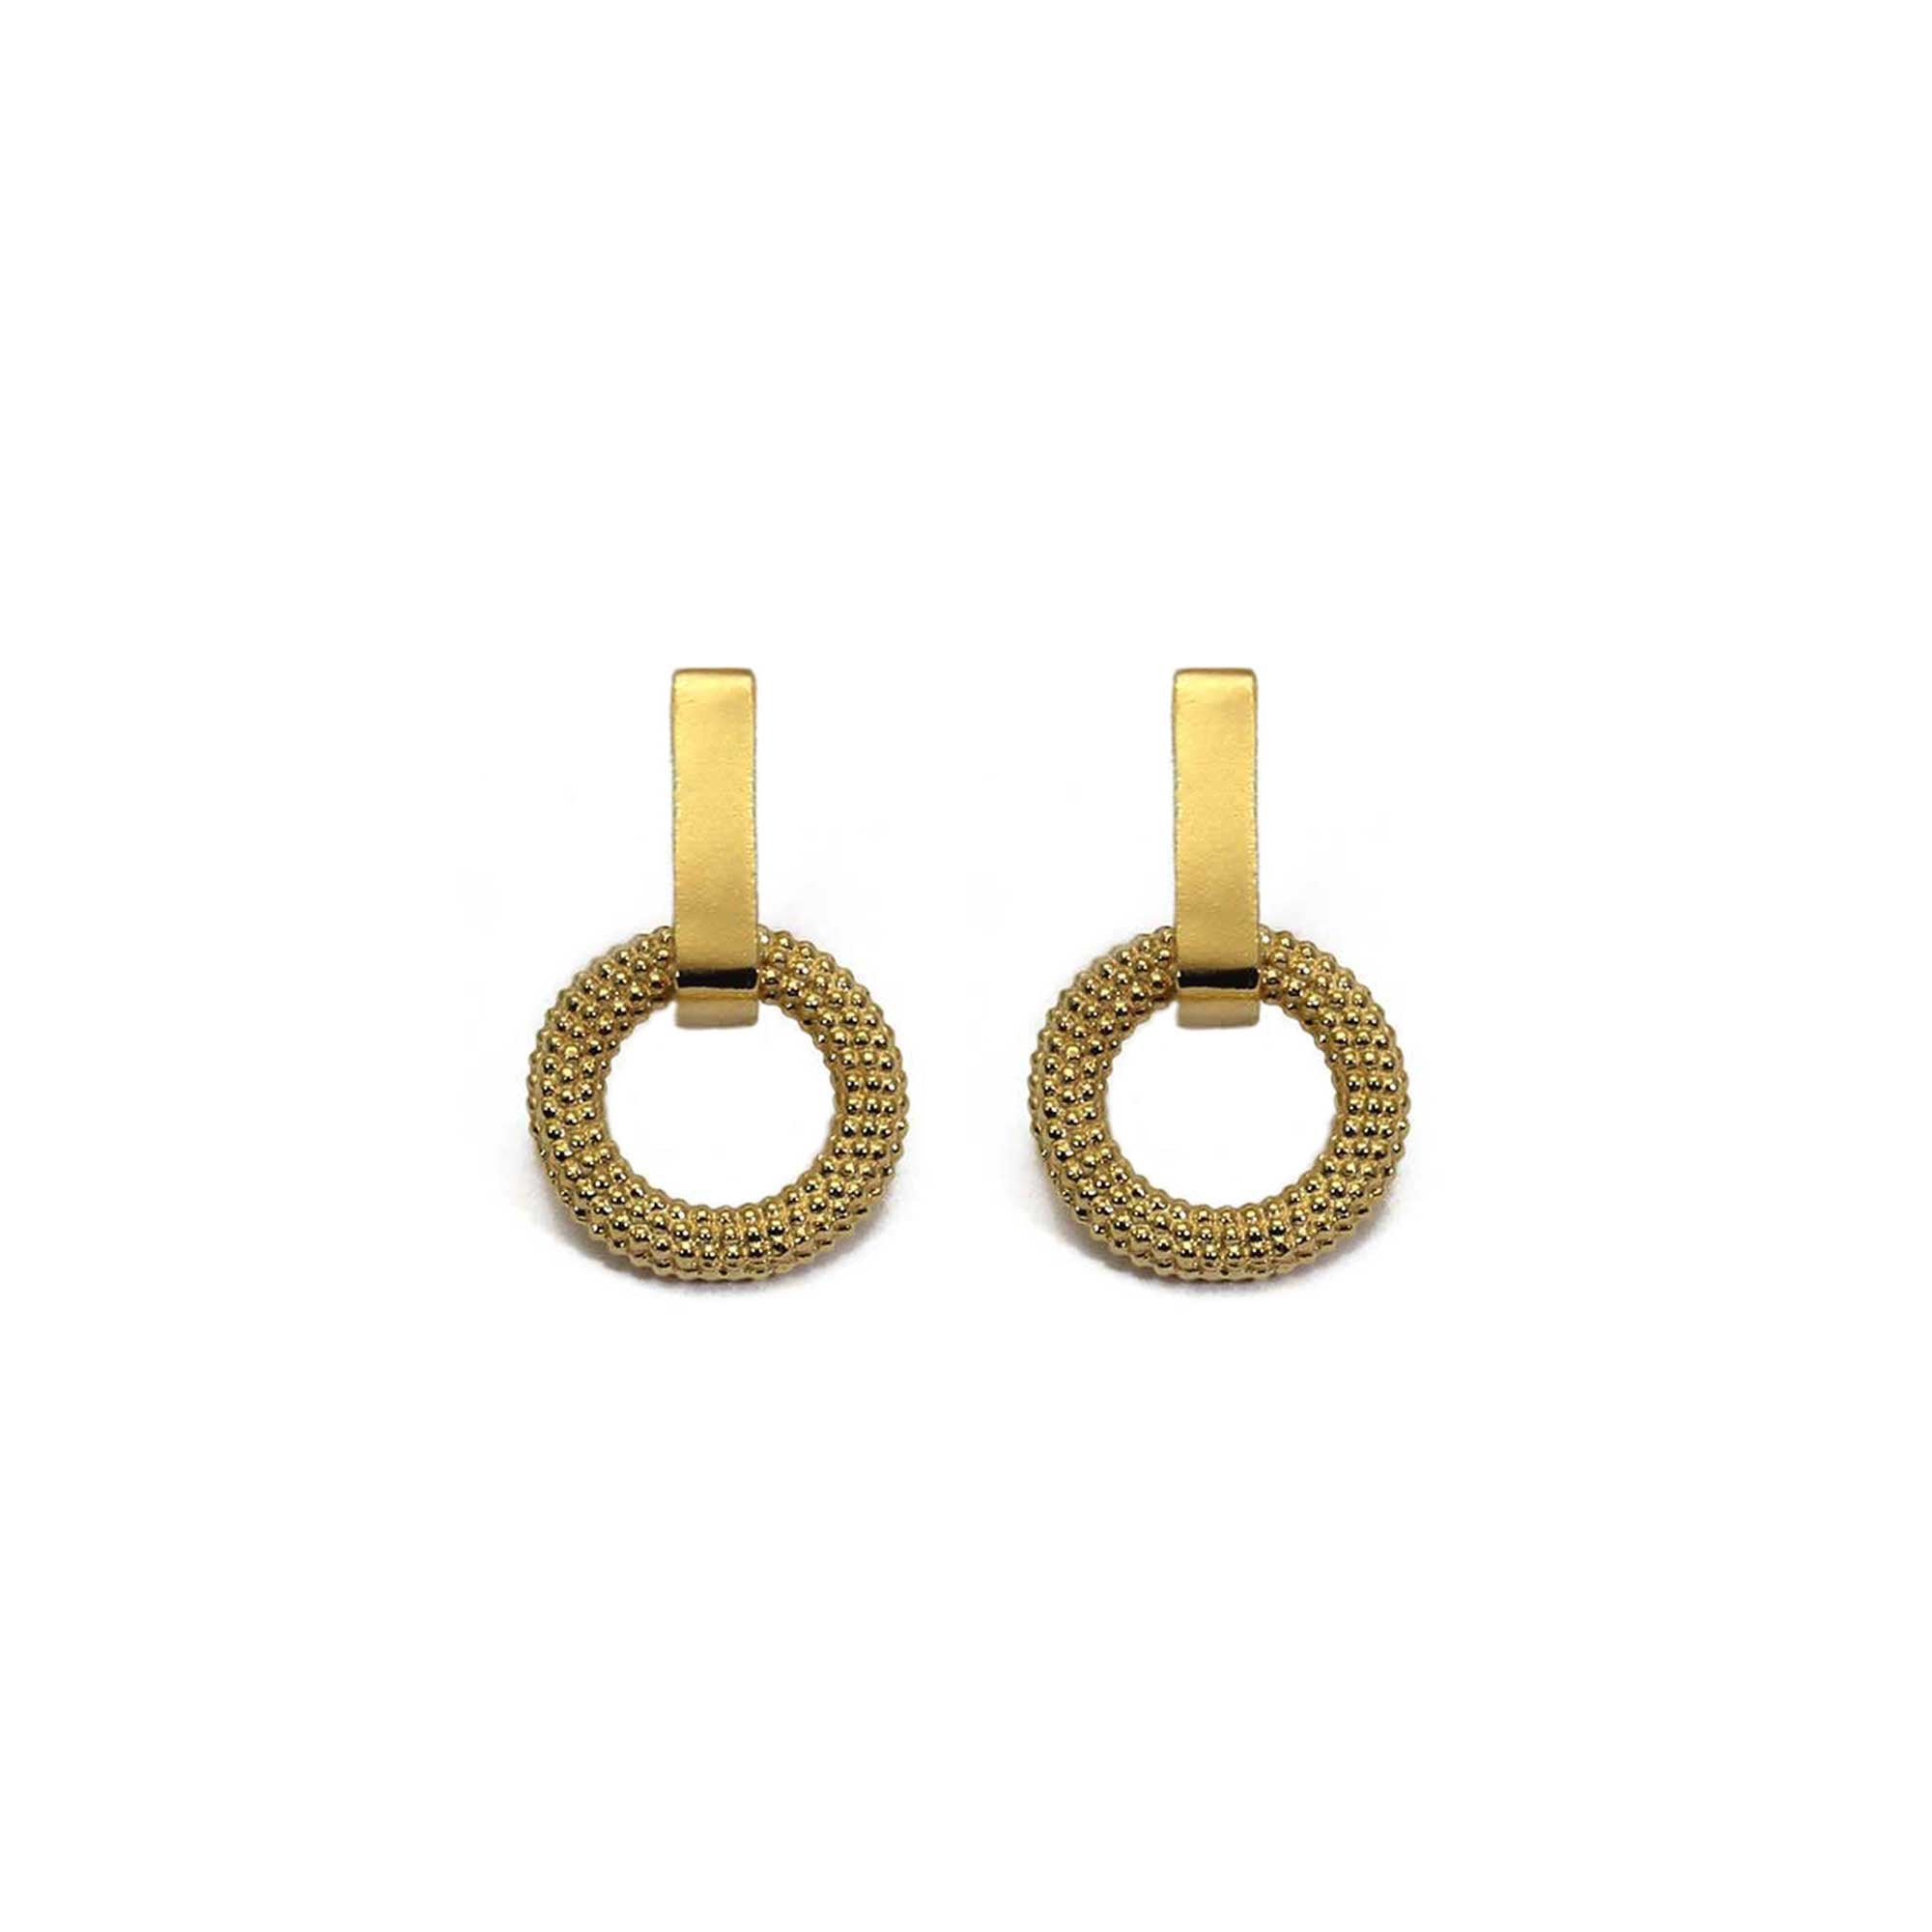 A pair of minimal yellow gold drop earrings